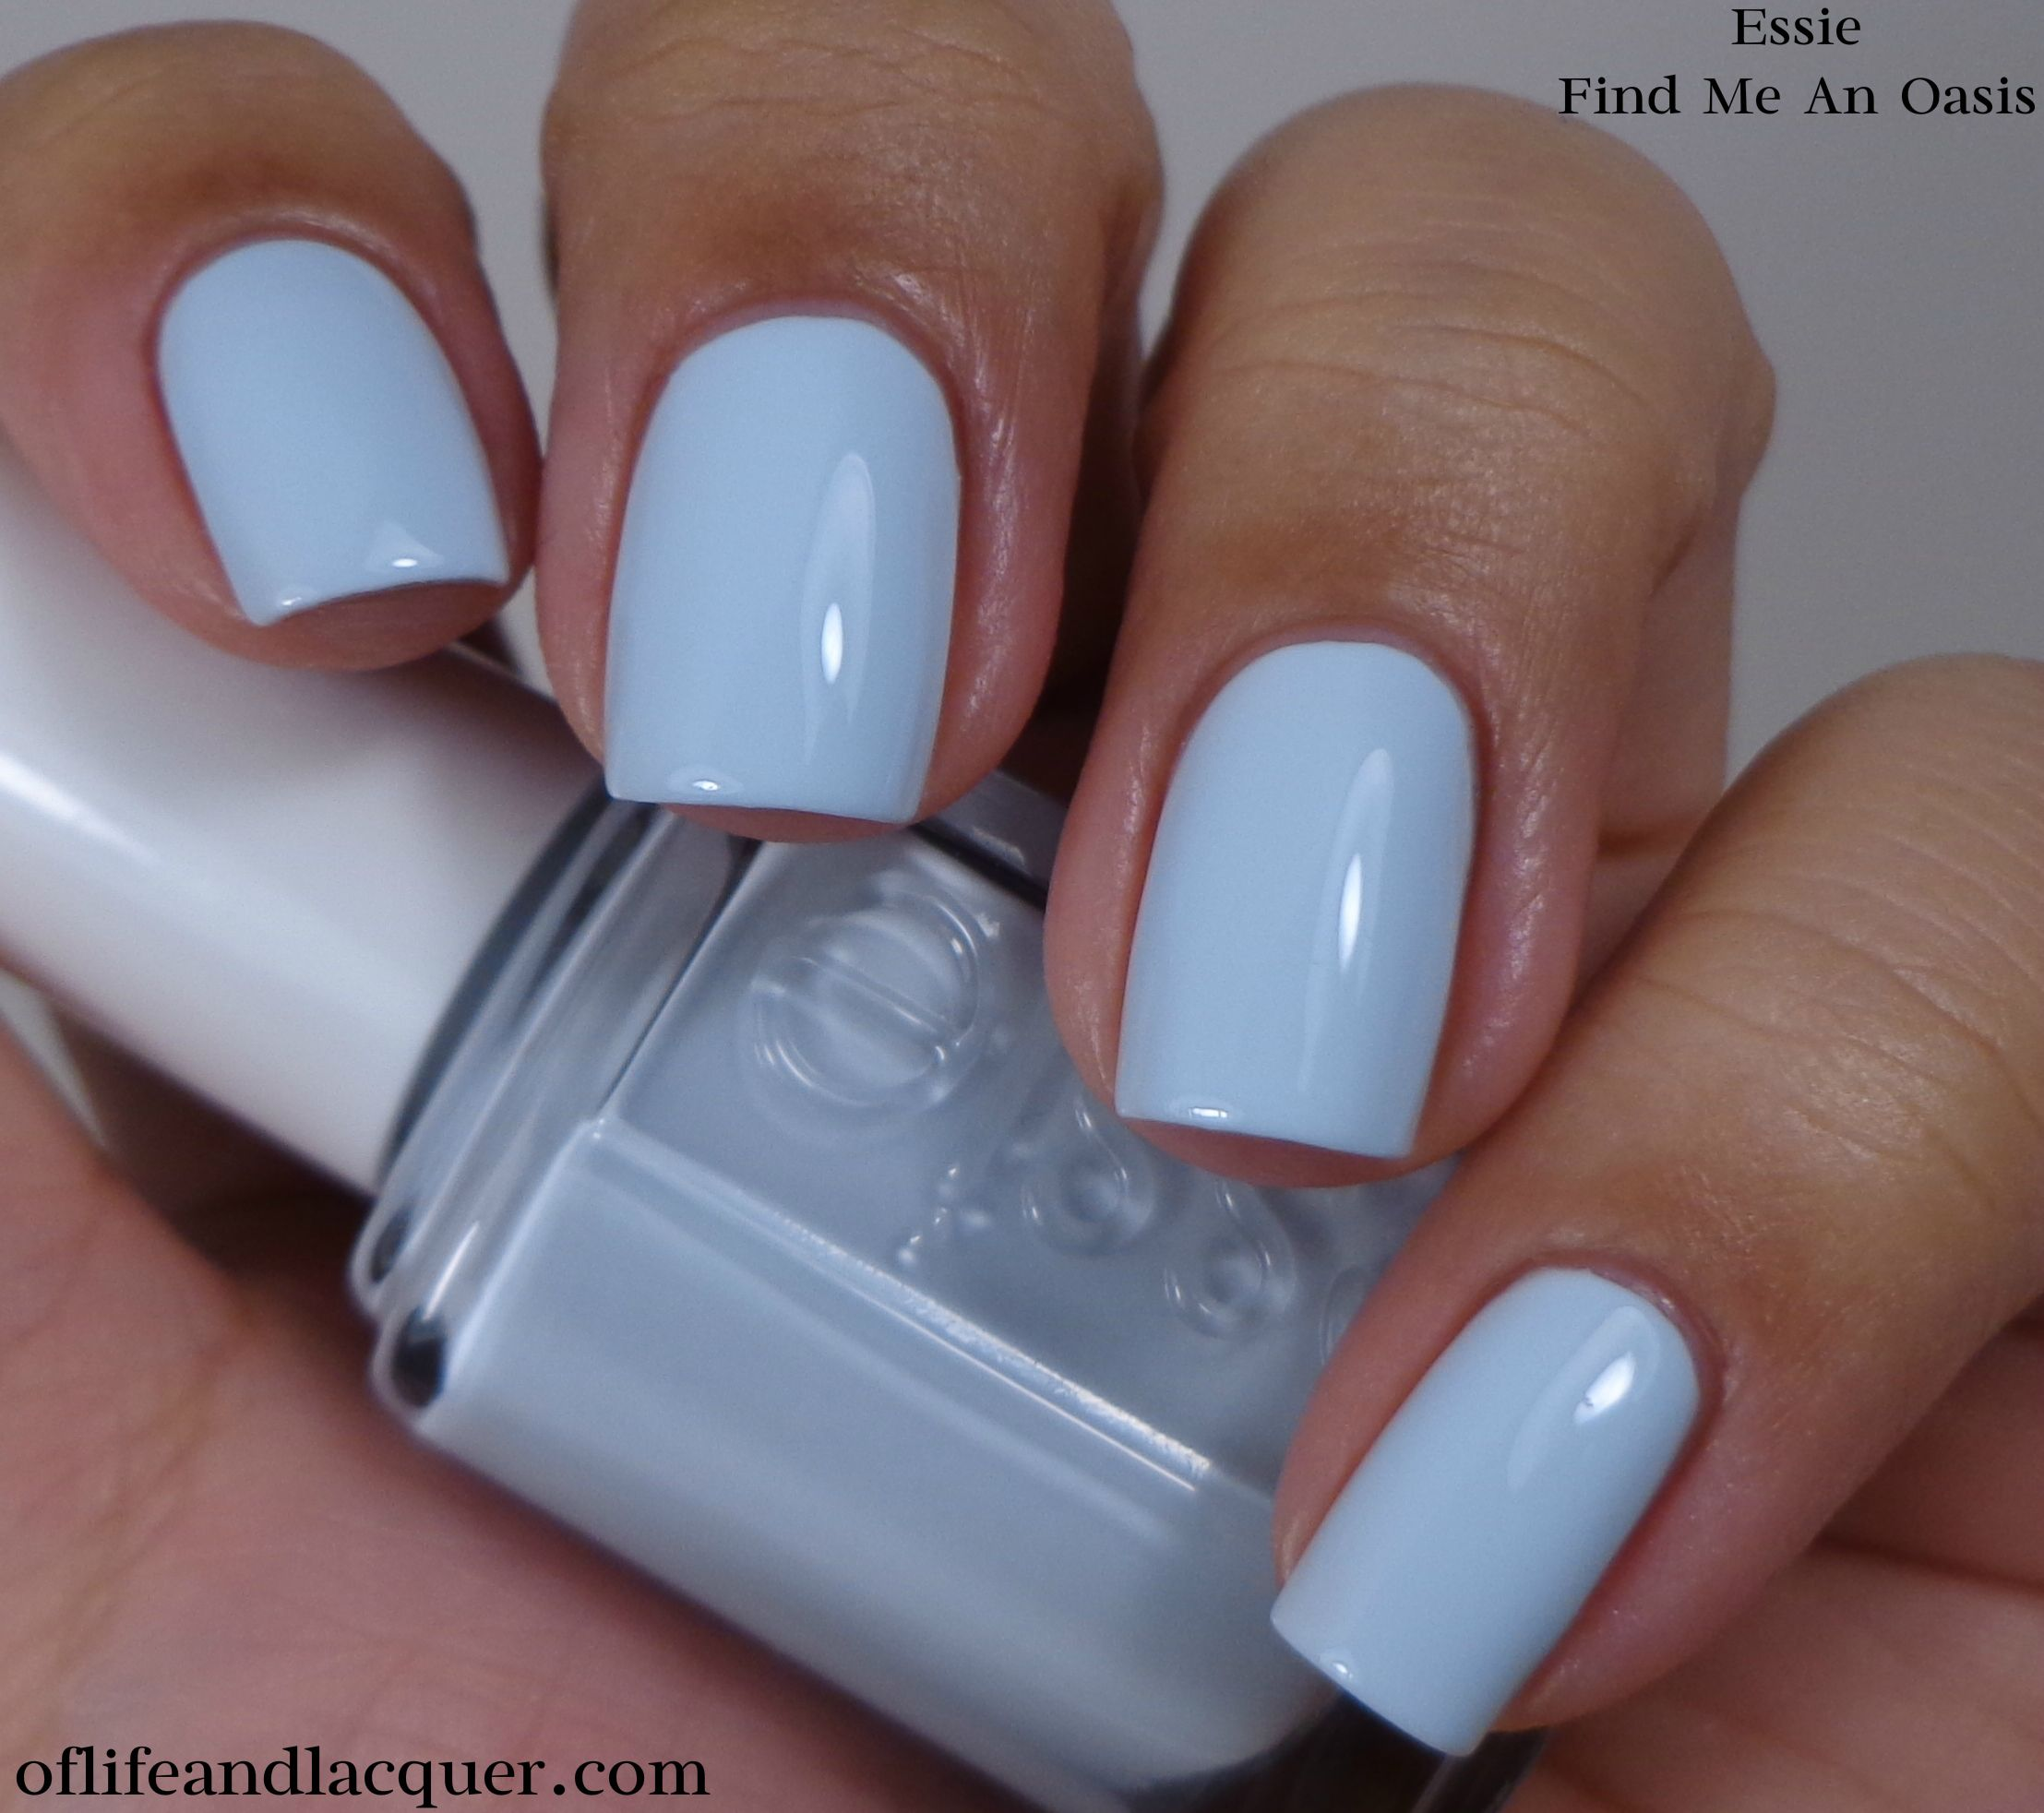 Essie 2014 Find Me an Oasis.....This color gives me LIFE! | nails ...